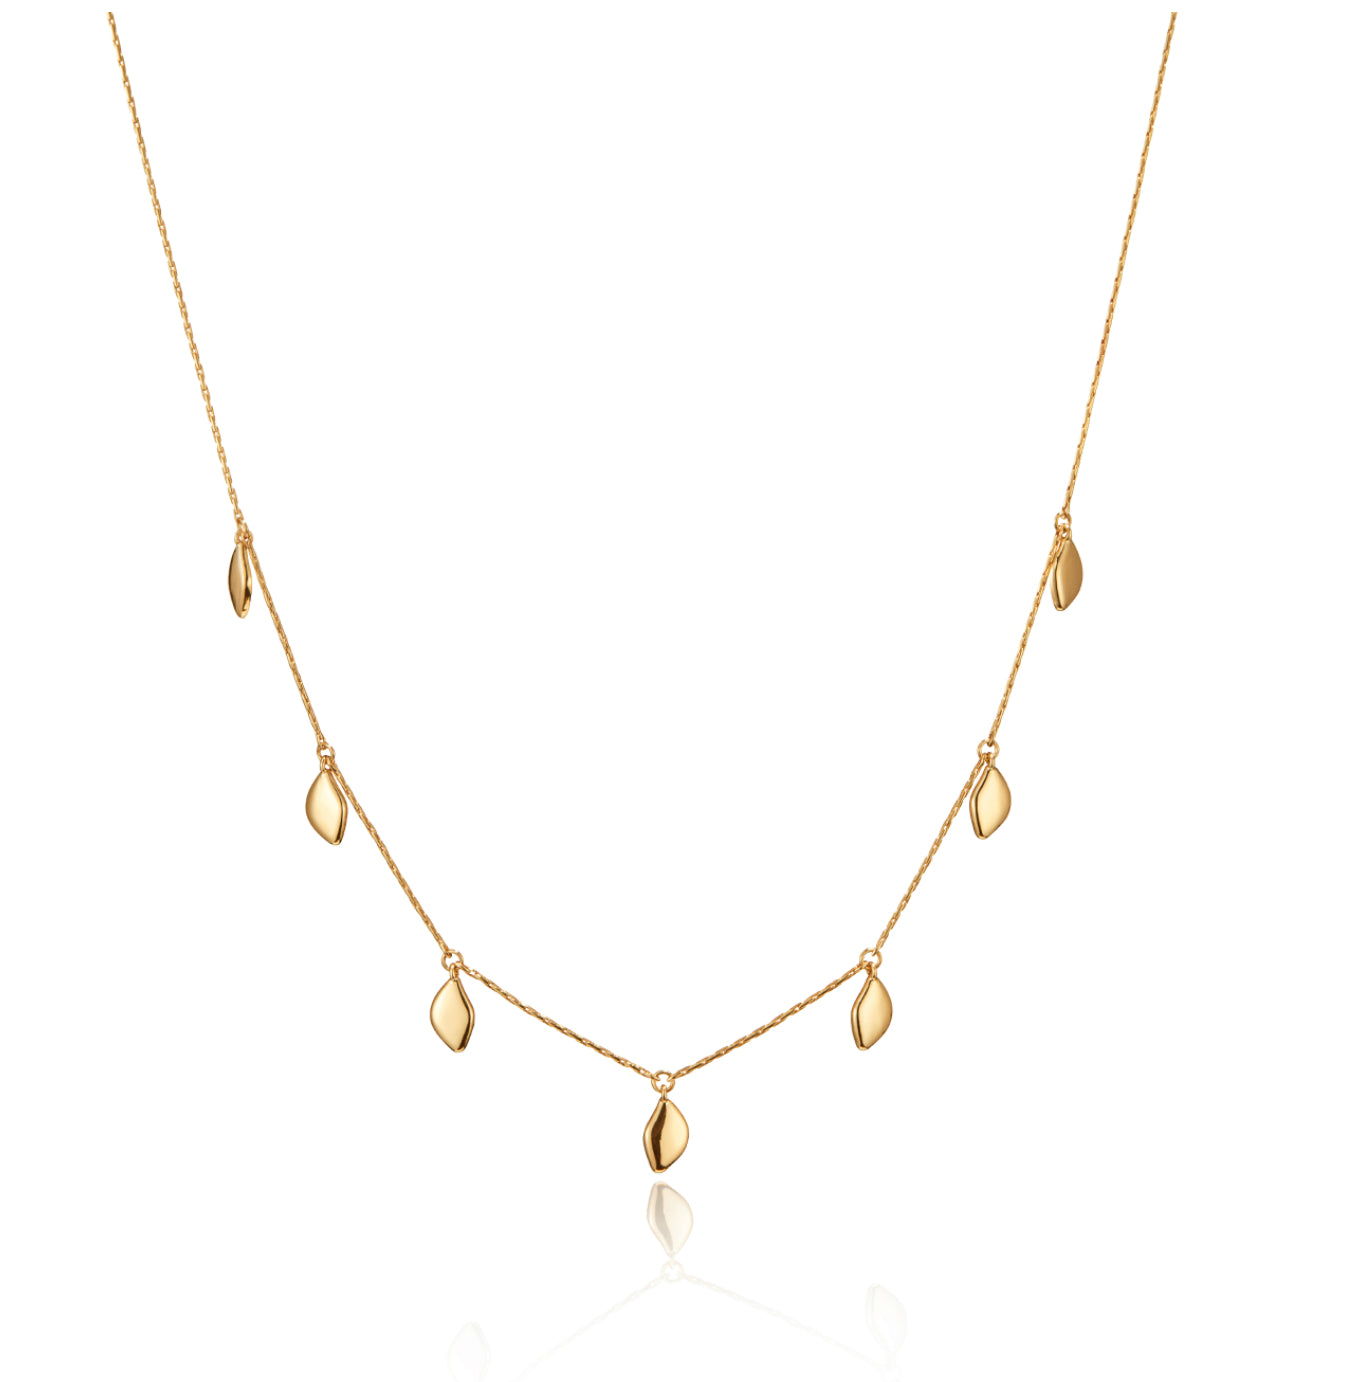 Foli Necklace (Gold, Silver)